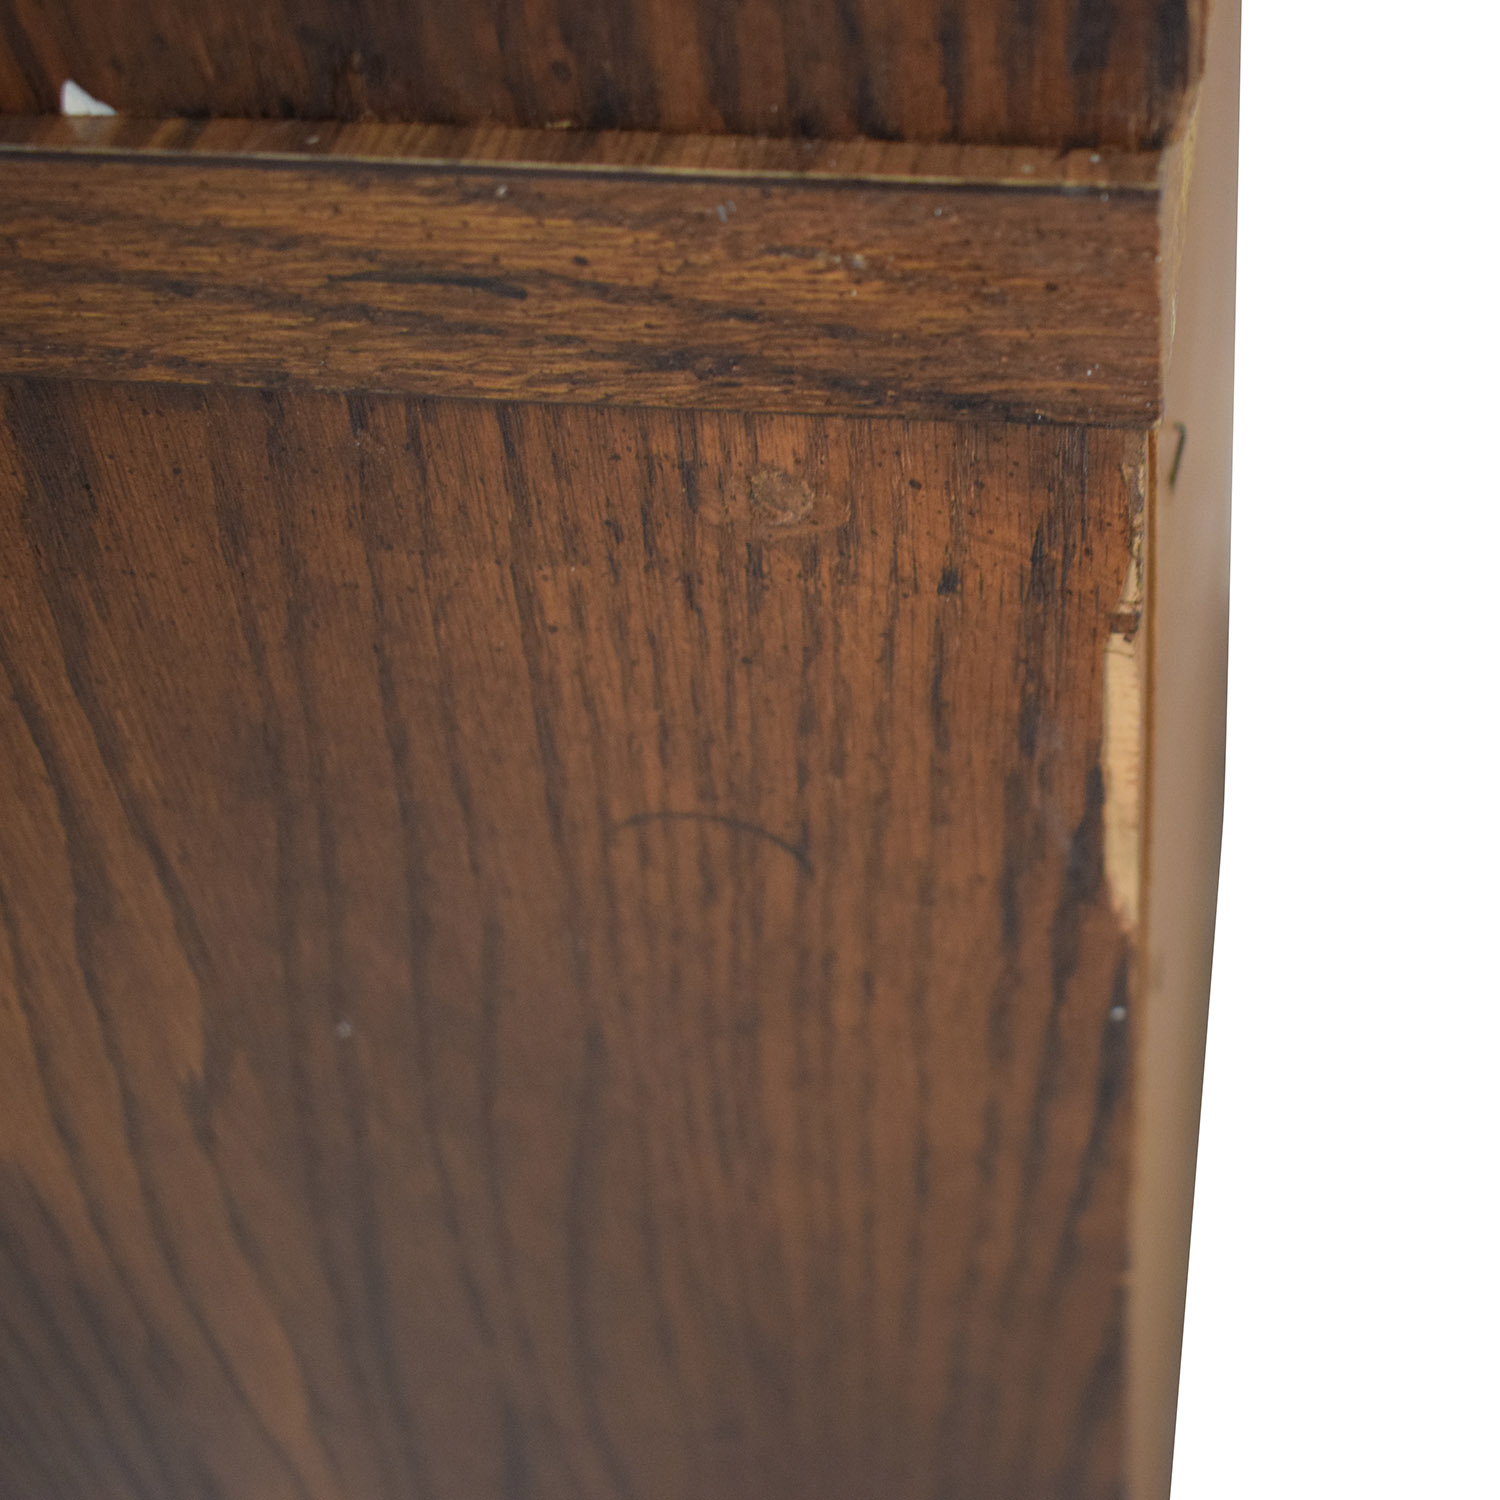 Wood Cabinet Hutch with Three Drawers for sale